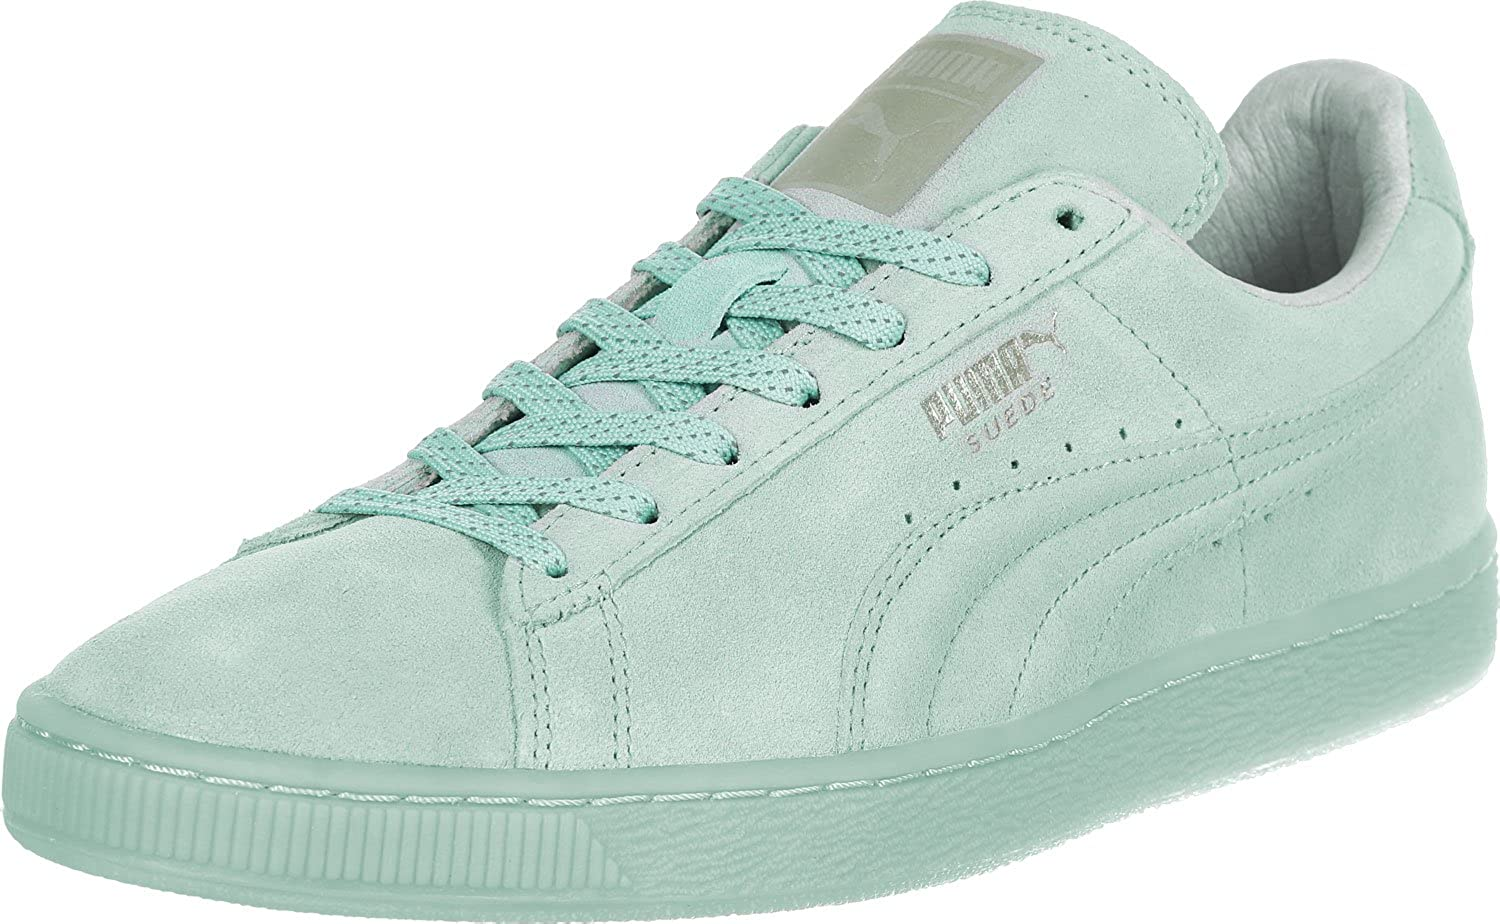 Puma Suede Classic+, Chaussons Sneaker Adulte Mixte Türkis